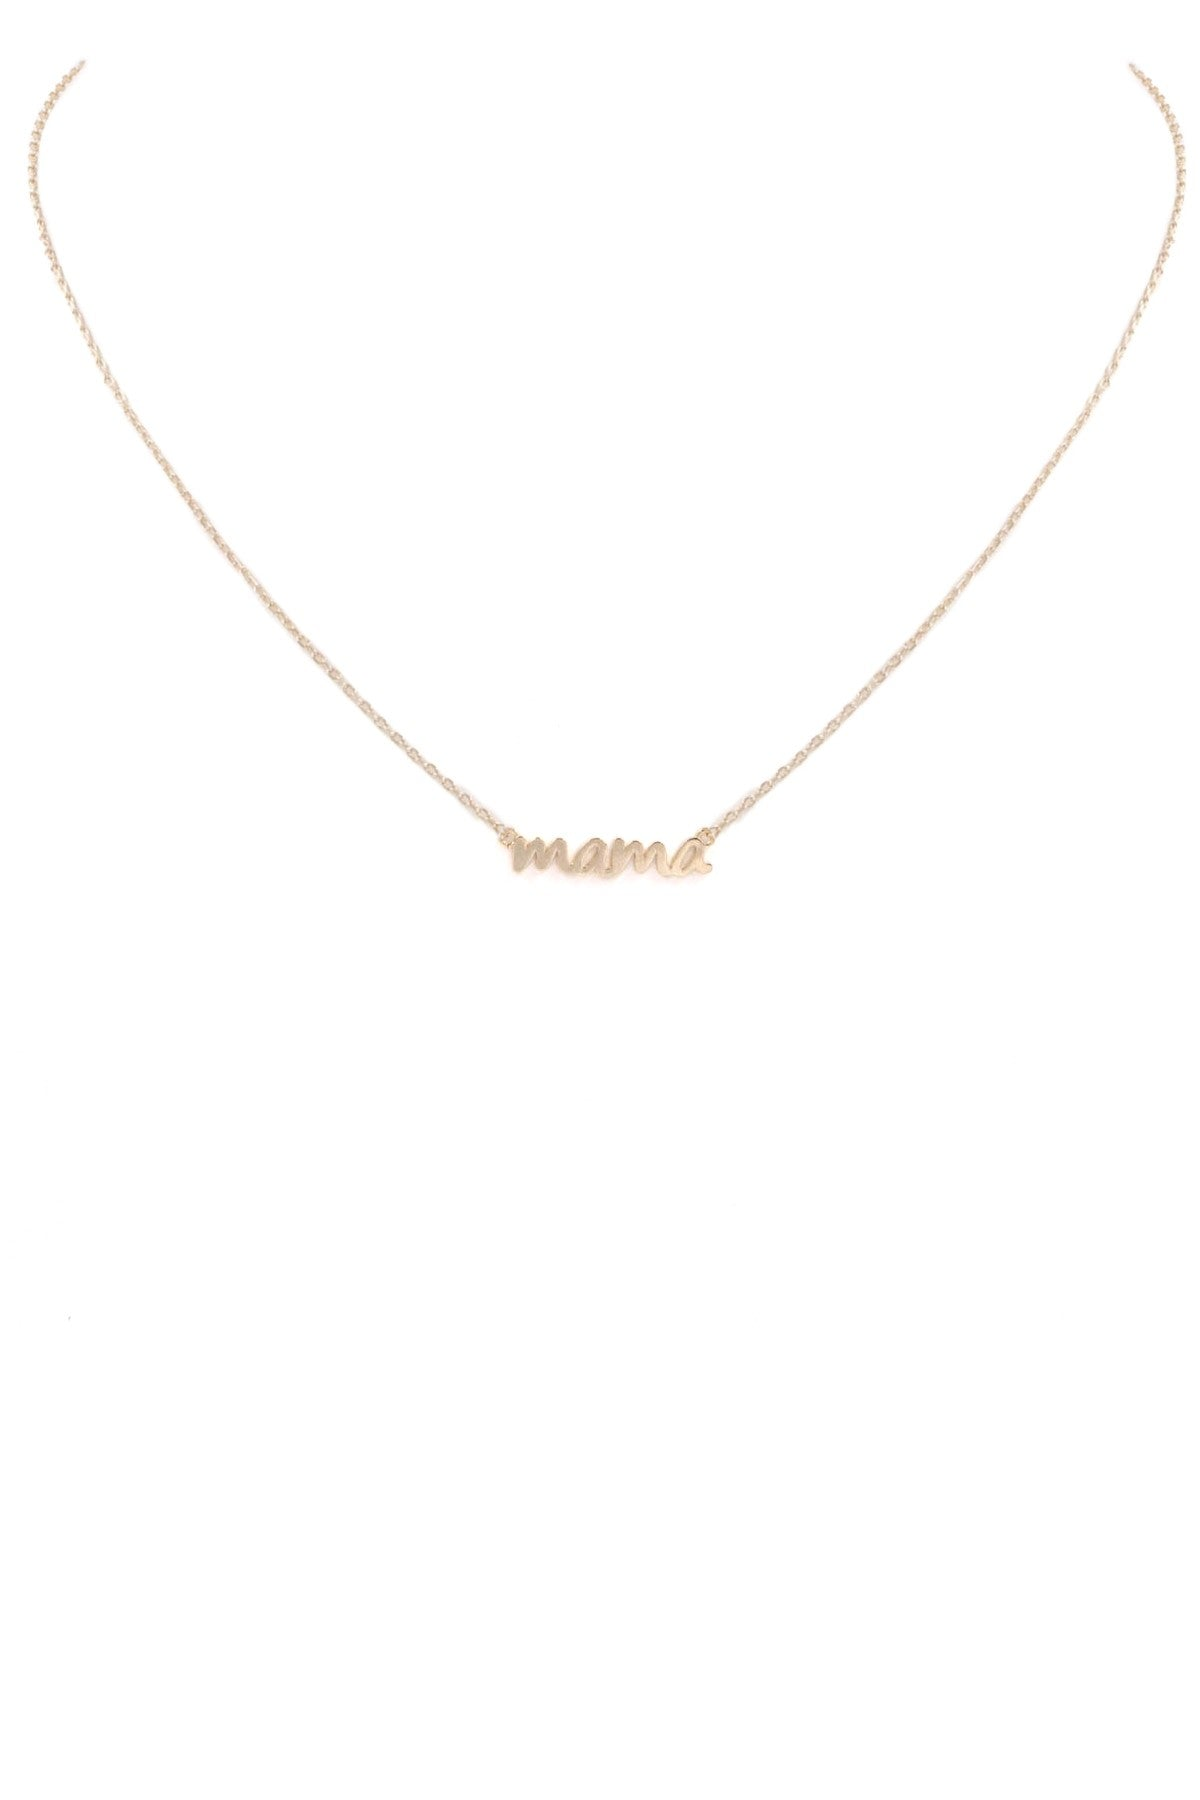 "With Love brass metal ""mama"" pendant necklace"